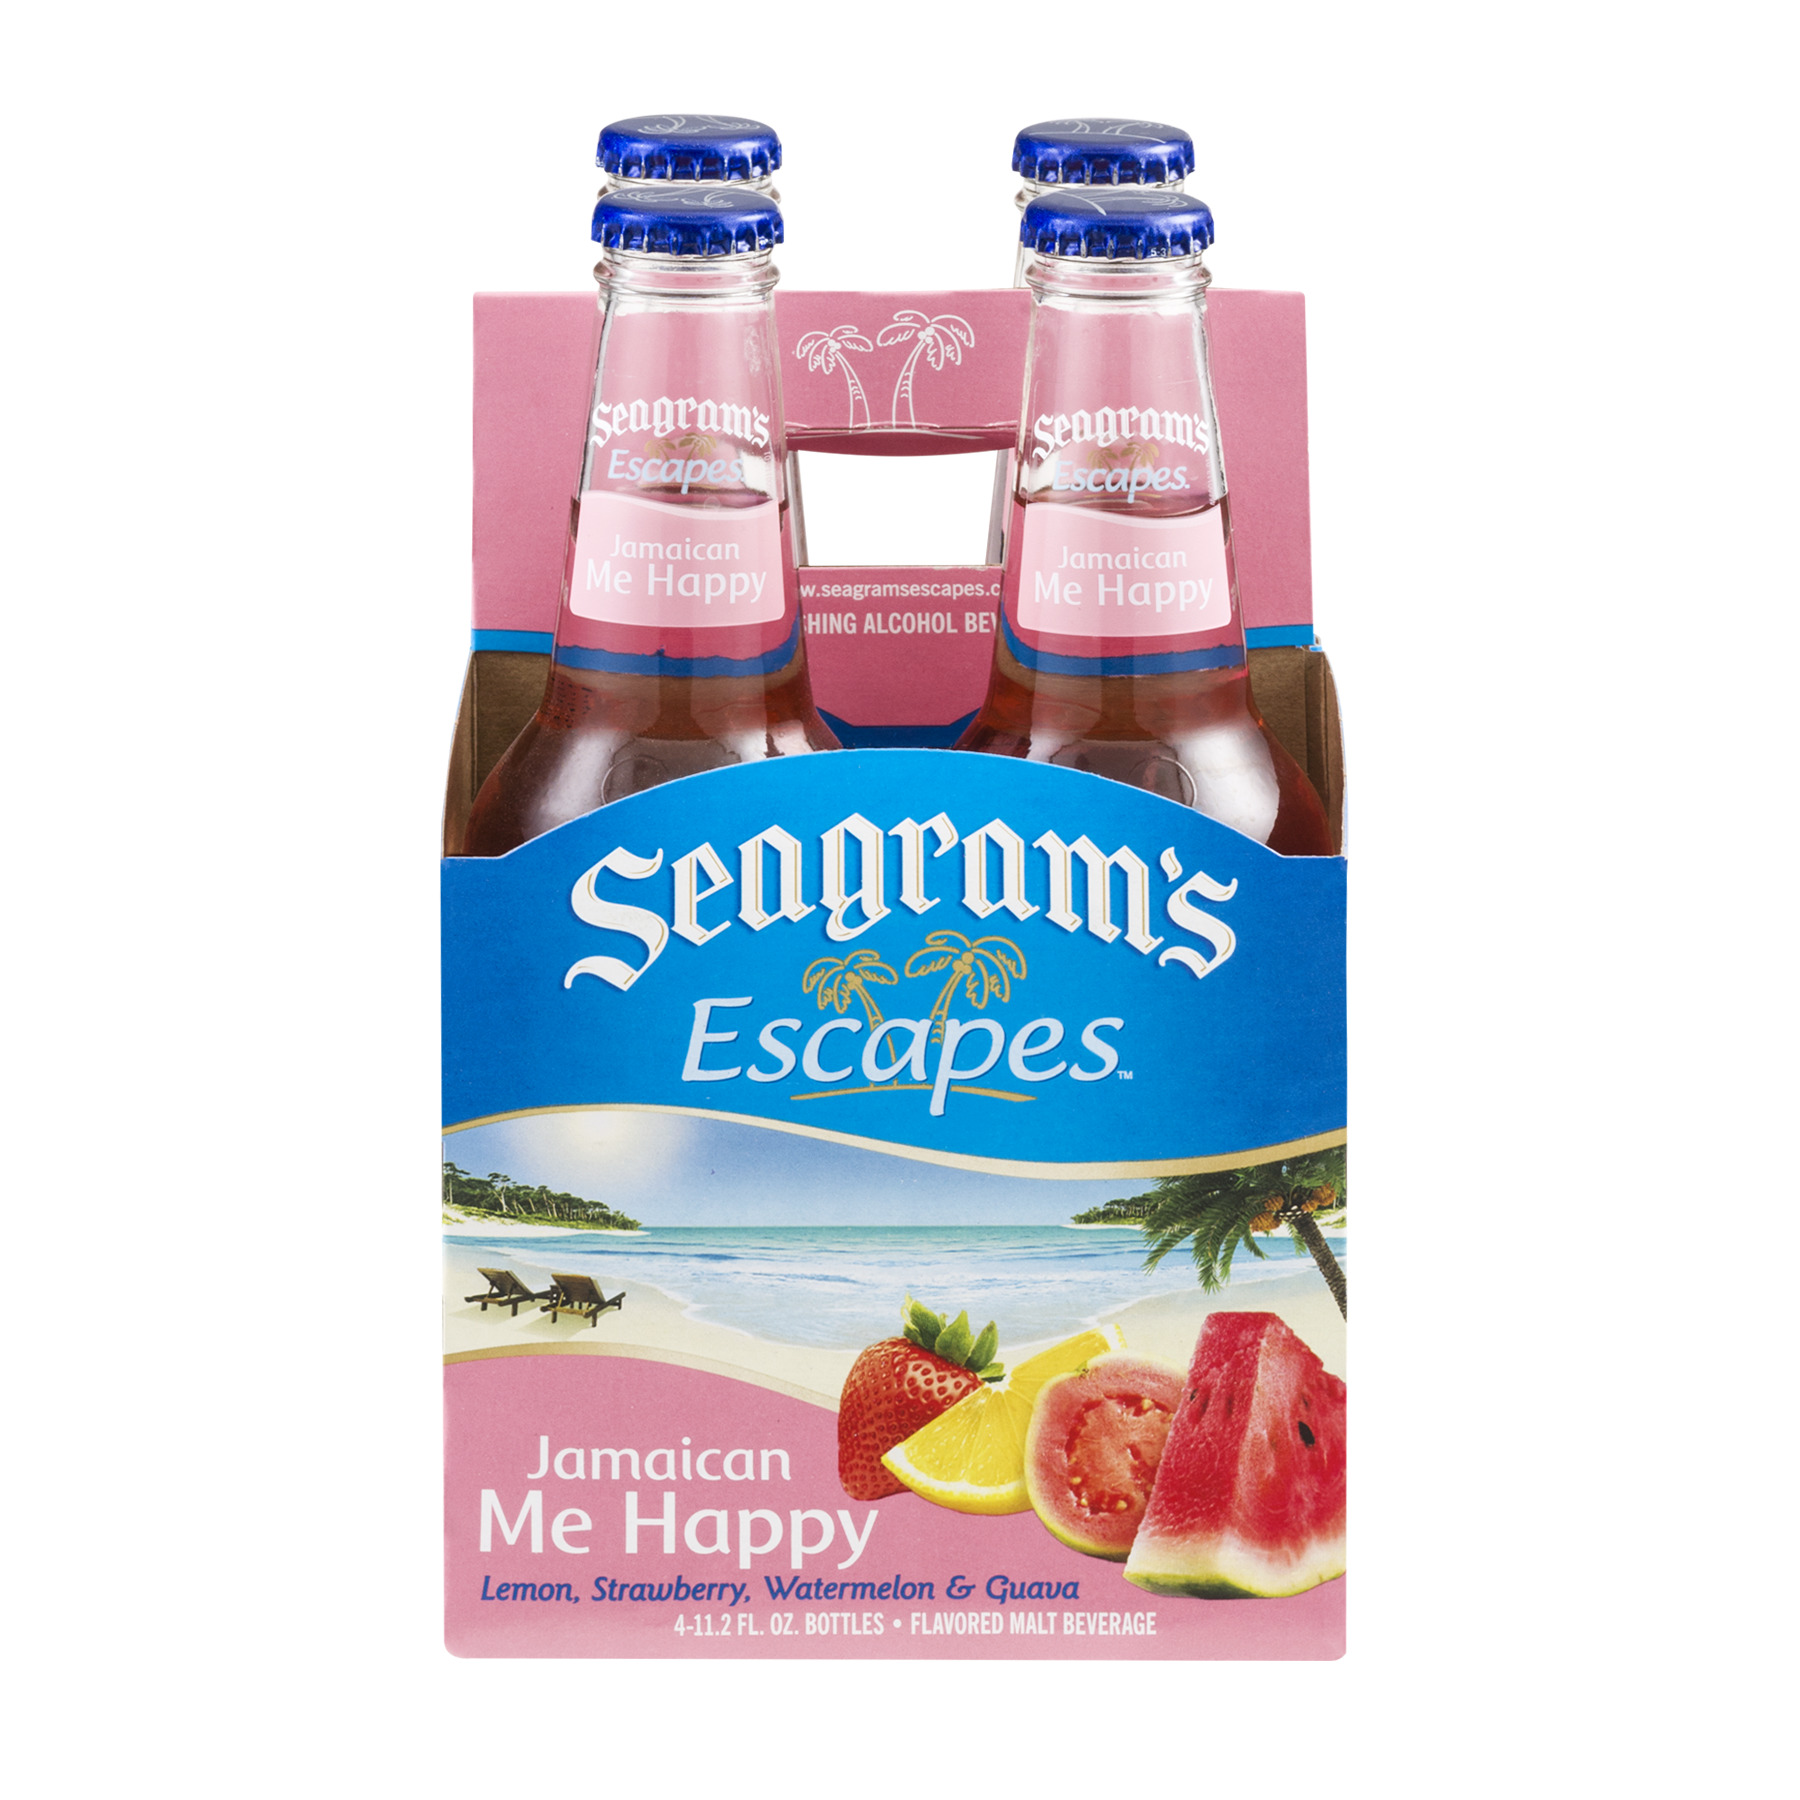 Seagram's Escapes Malt Beverage Bottles Jamaican Me Happy, 11.2 FL OZ